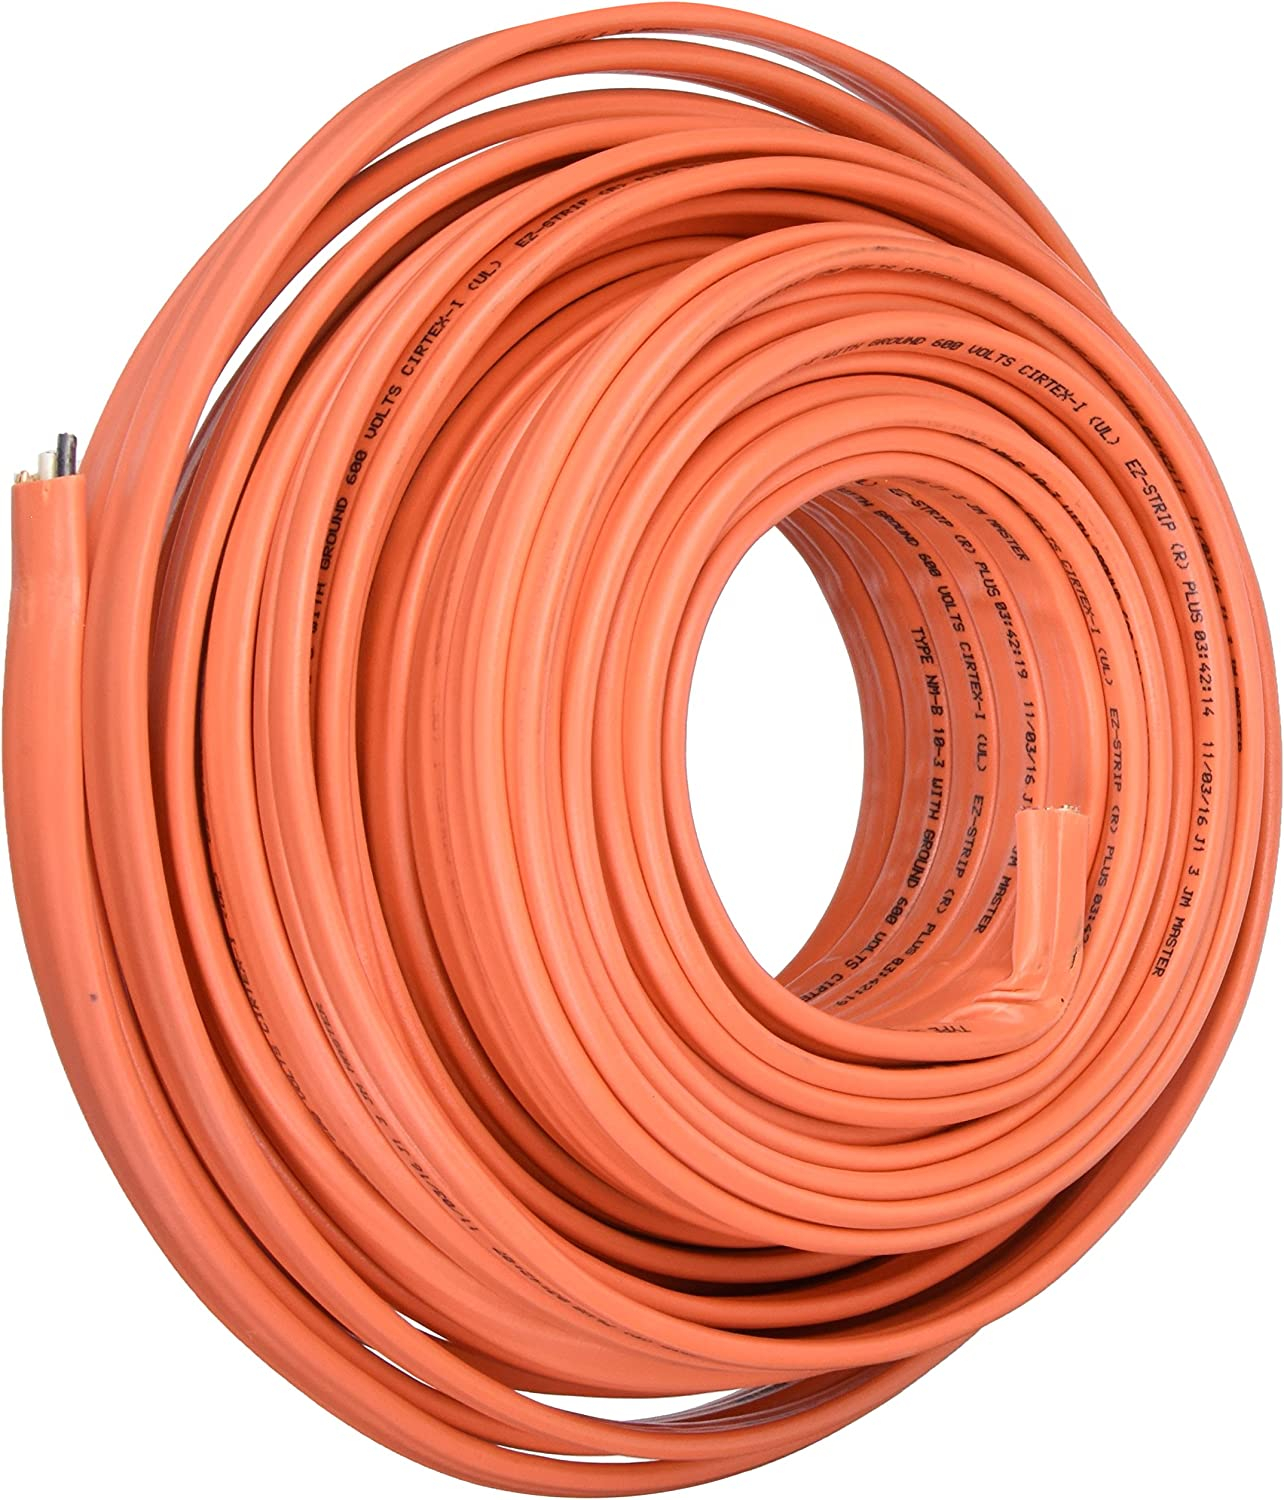 NEW 75/' 6//2 W//GROUND NM-B ROMEX HOUSE WIRE//CABLE